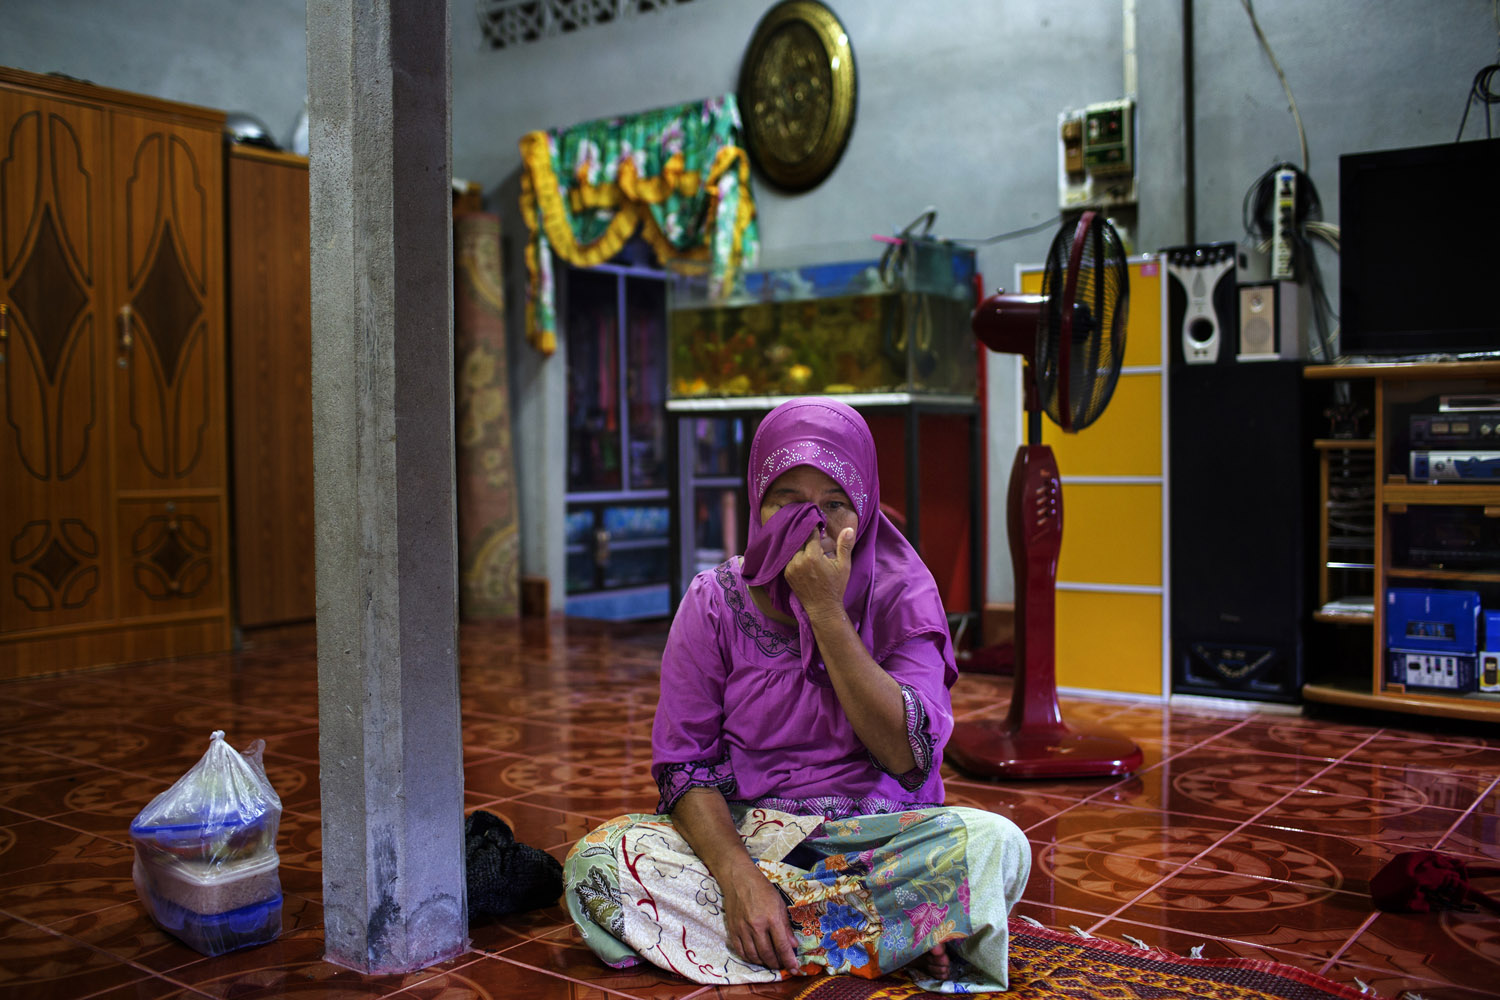 Sumoh Makeh, 51, the mother of Subri Dotaeset, 24, weeps during an interview in her home in Talok Hala Village near Yala, Southern Thailand. Subri, a suspected insurgent, was shot and killed in an ambush while attacking a Marine base.